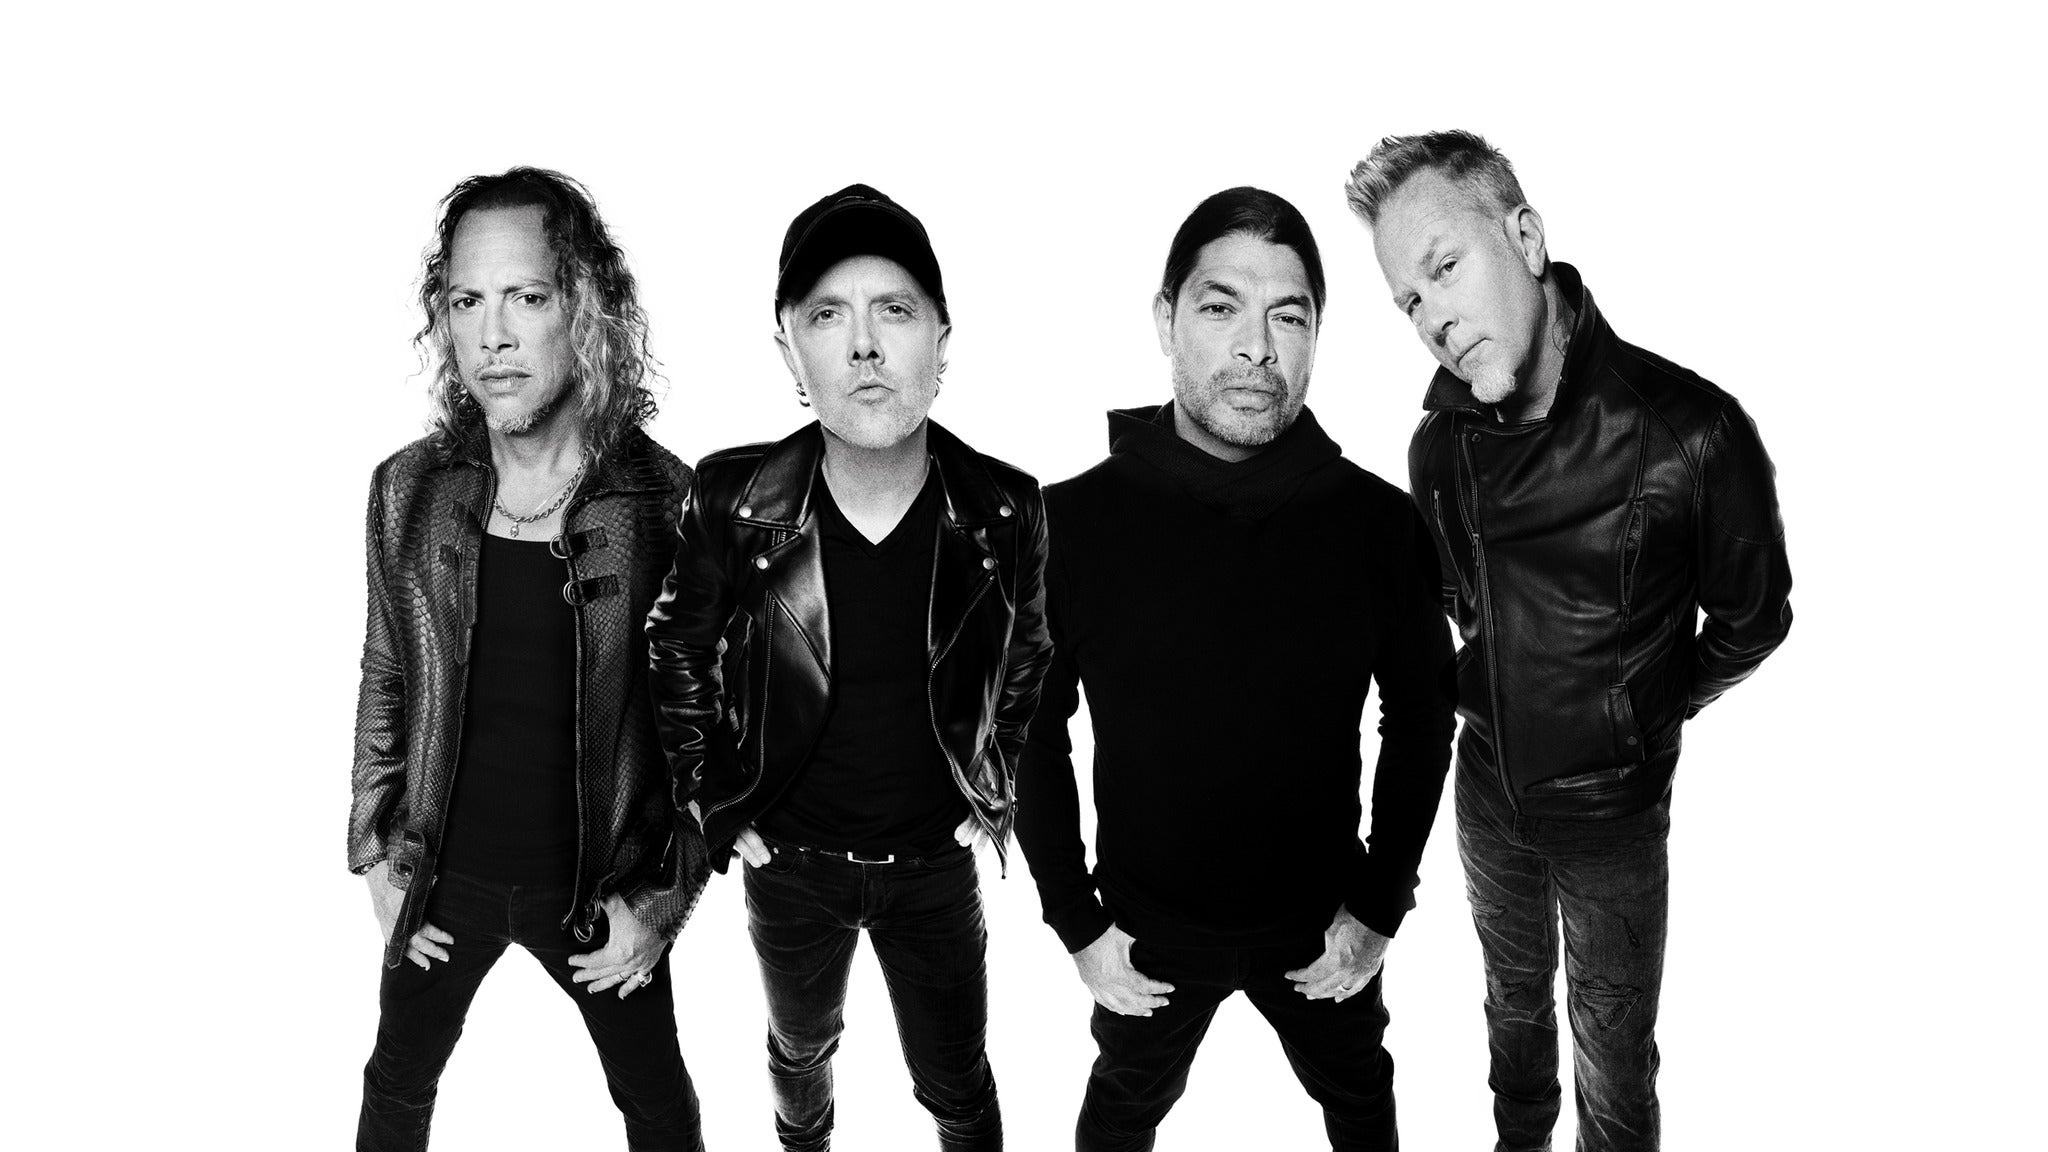 Metallica - WorldWired Tour 2017 at Iowa Speedway